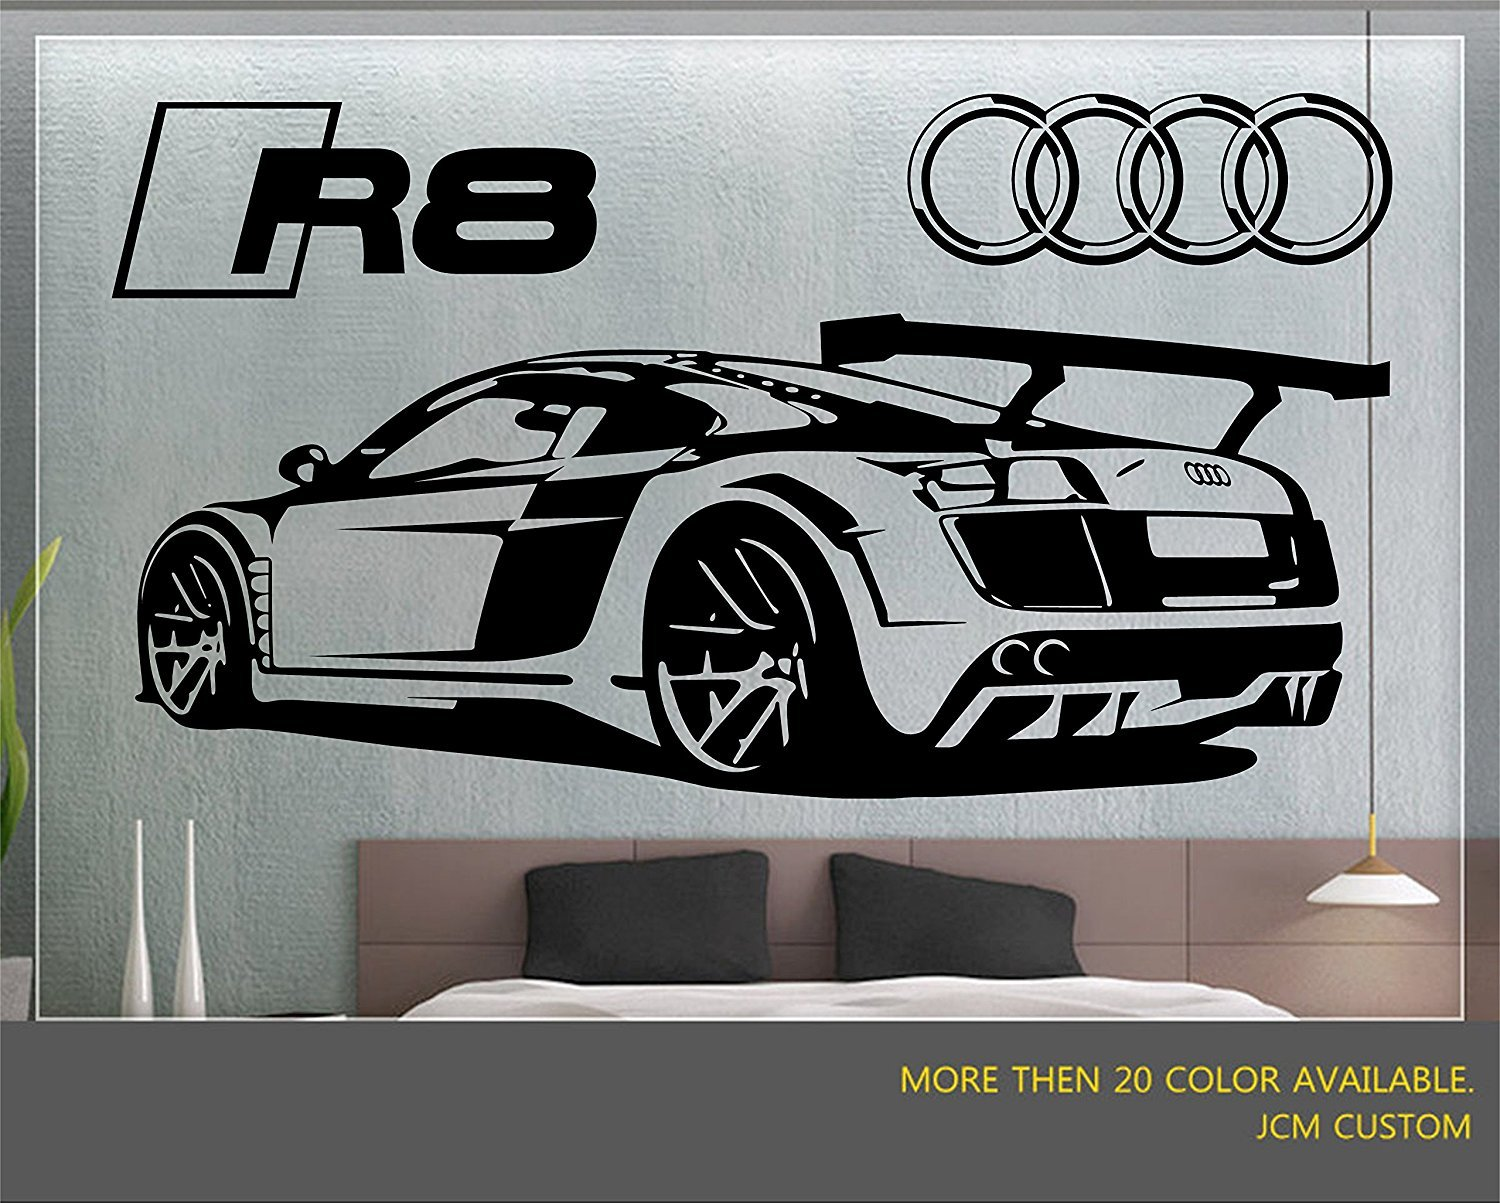 Jcm custom r8 gt racing sport car removable wall vinyl decal stickers 58 x 22 amazon com